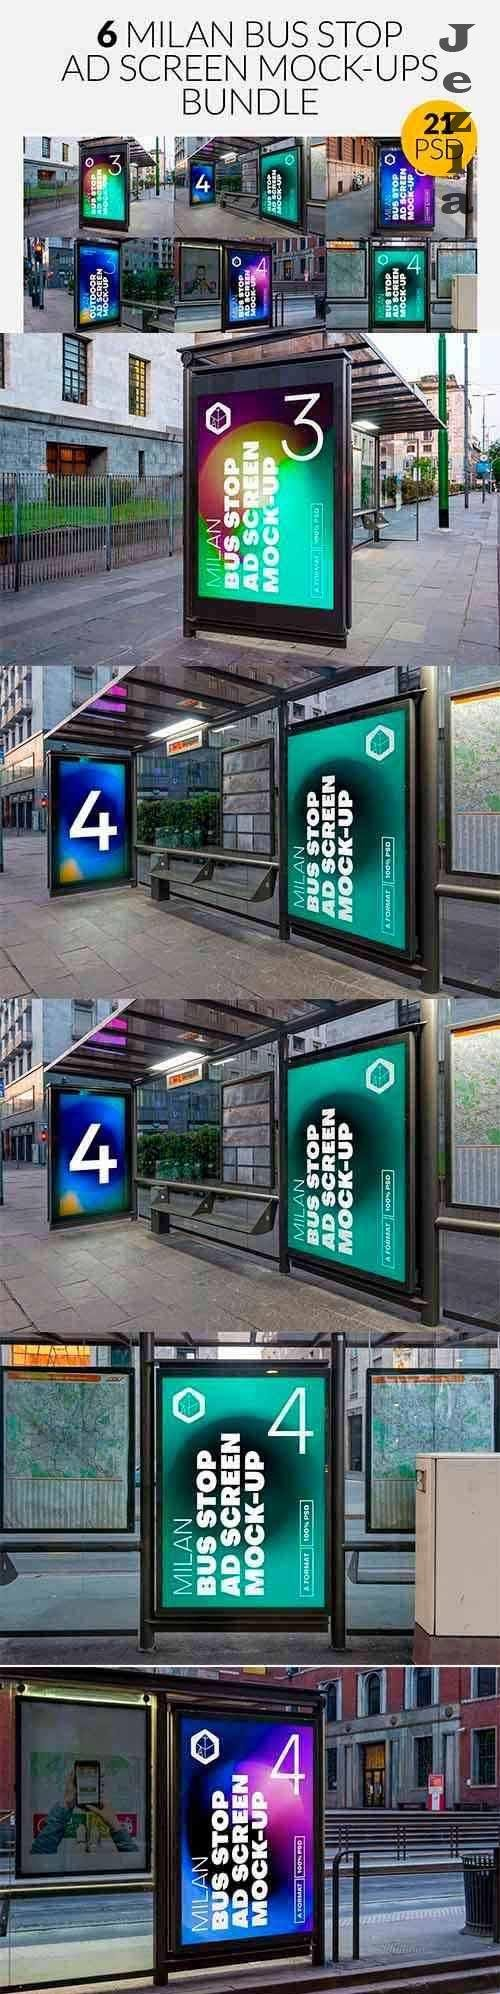 CreativeMarket - Milan BusStop Ad Screen MockUps Set 5488880